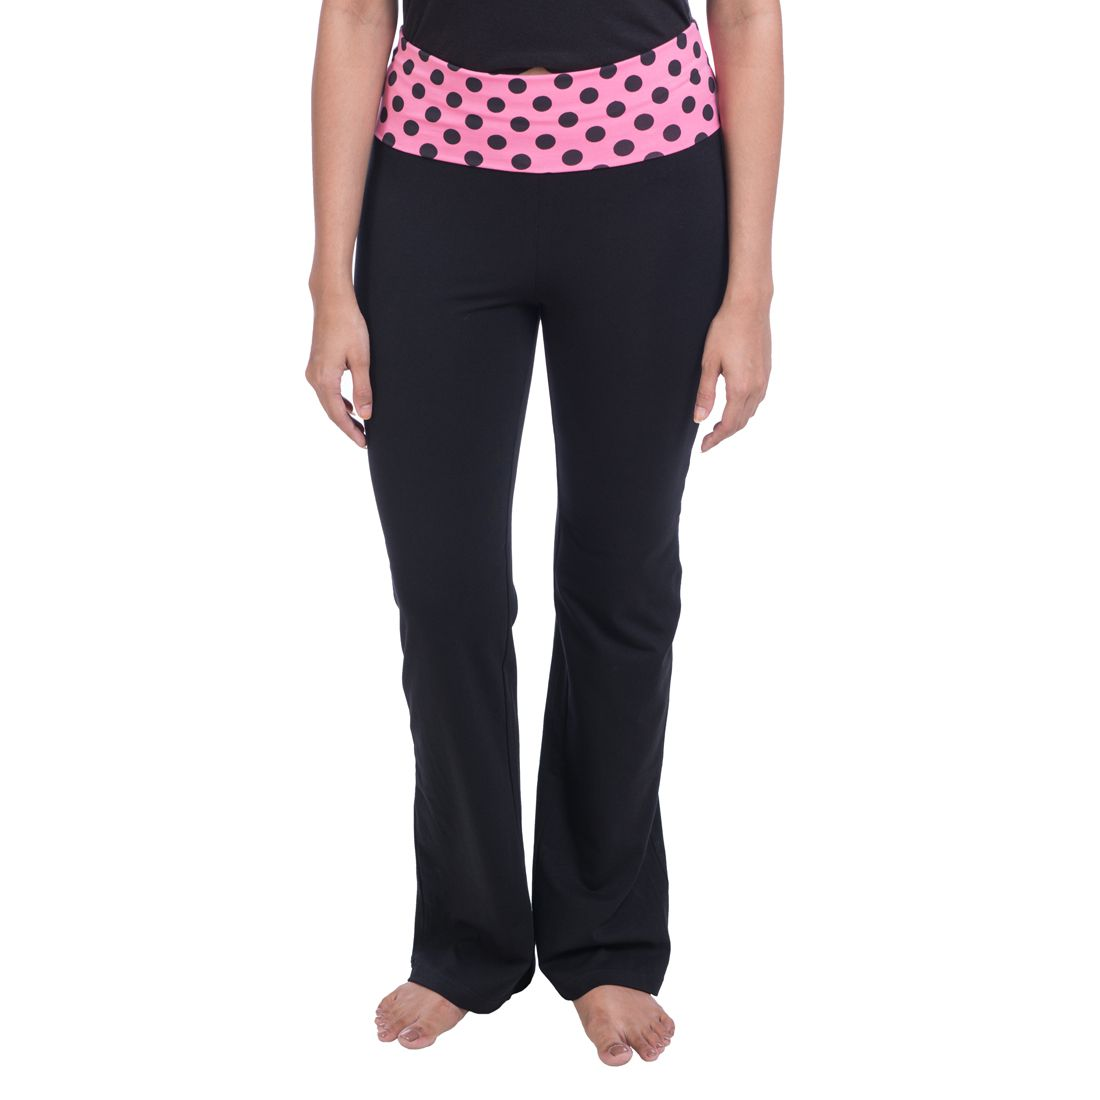 Nite Flitet Black Cotton Lycra Yoga Pants